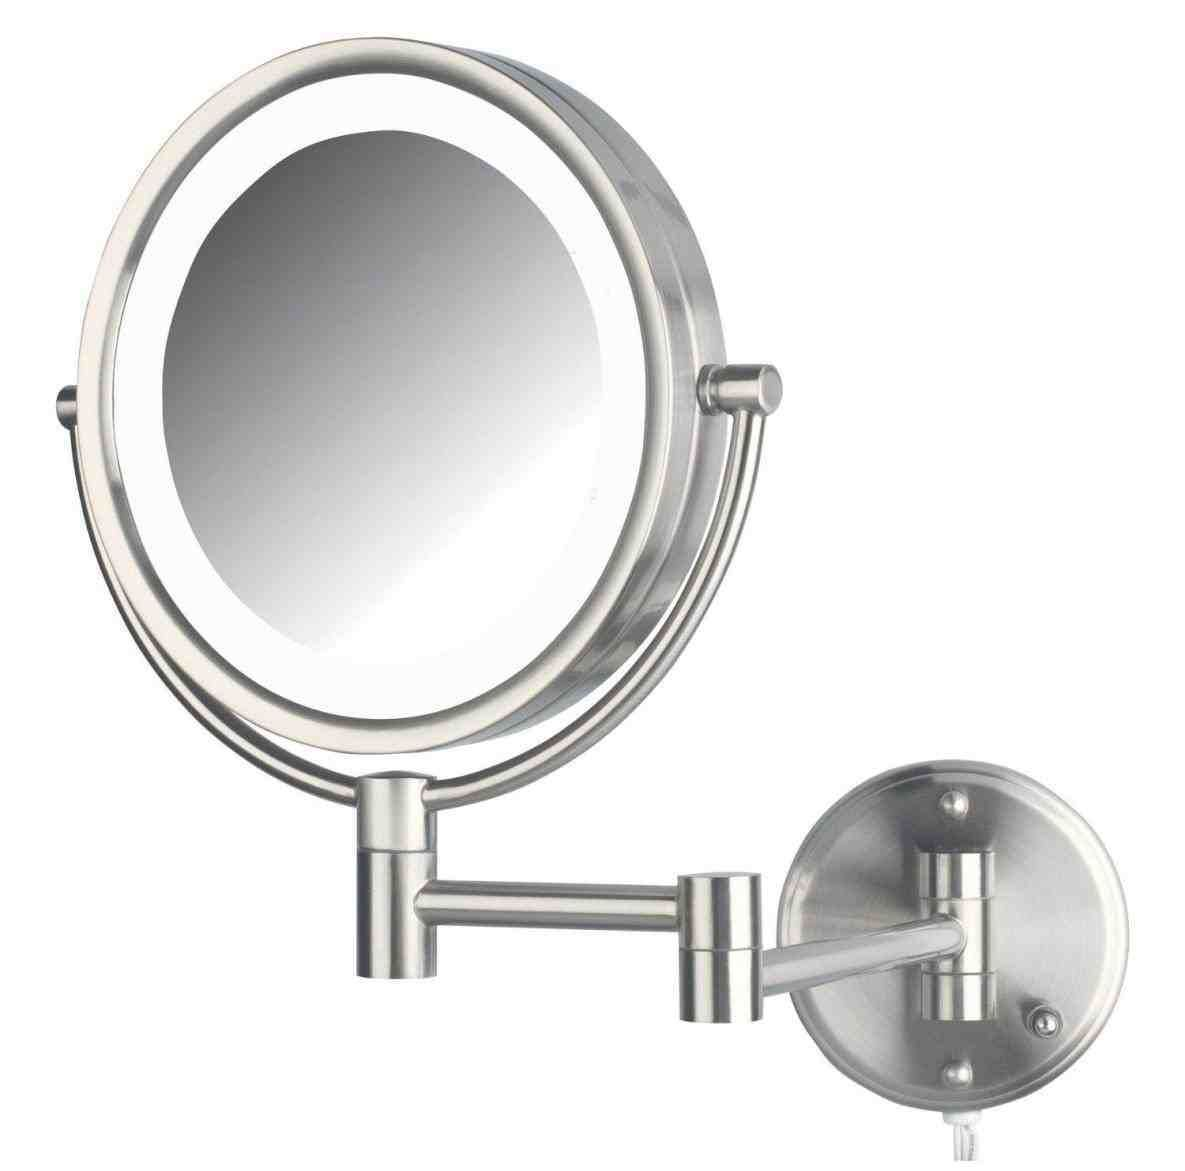 New Post wall mounted magnifying mirrors for bathrooms | LivingRooms ...